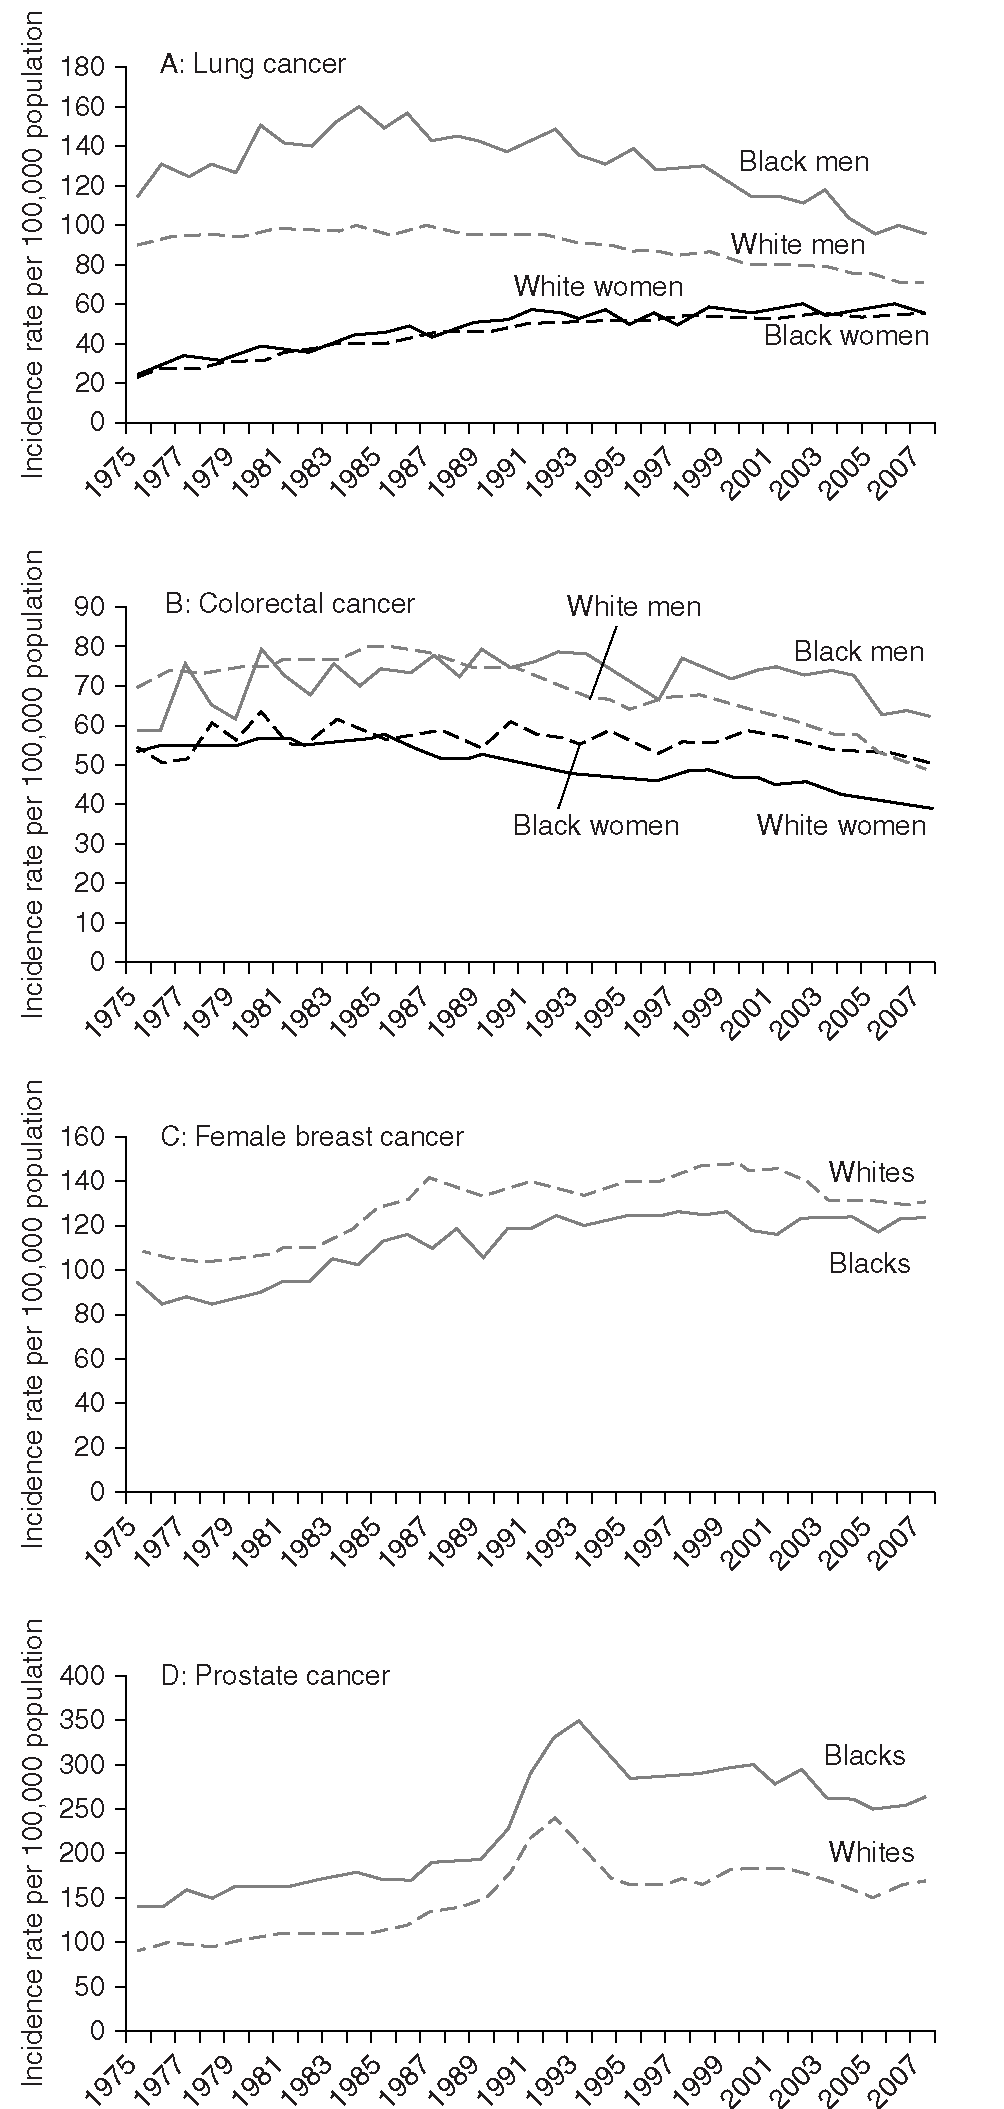 Cancer Incidence Rates for African Americans and Whites for Lung, Colorectal, Female Breast, and Prostate Cancers in the United States, 1975-2007